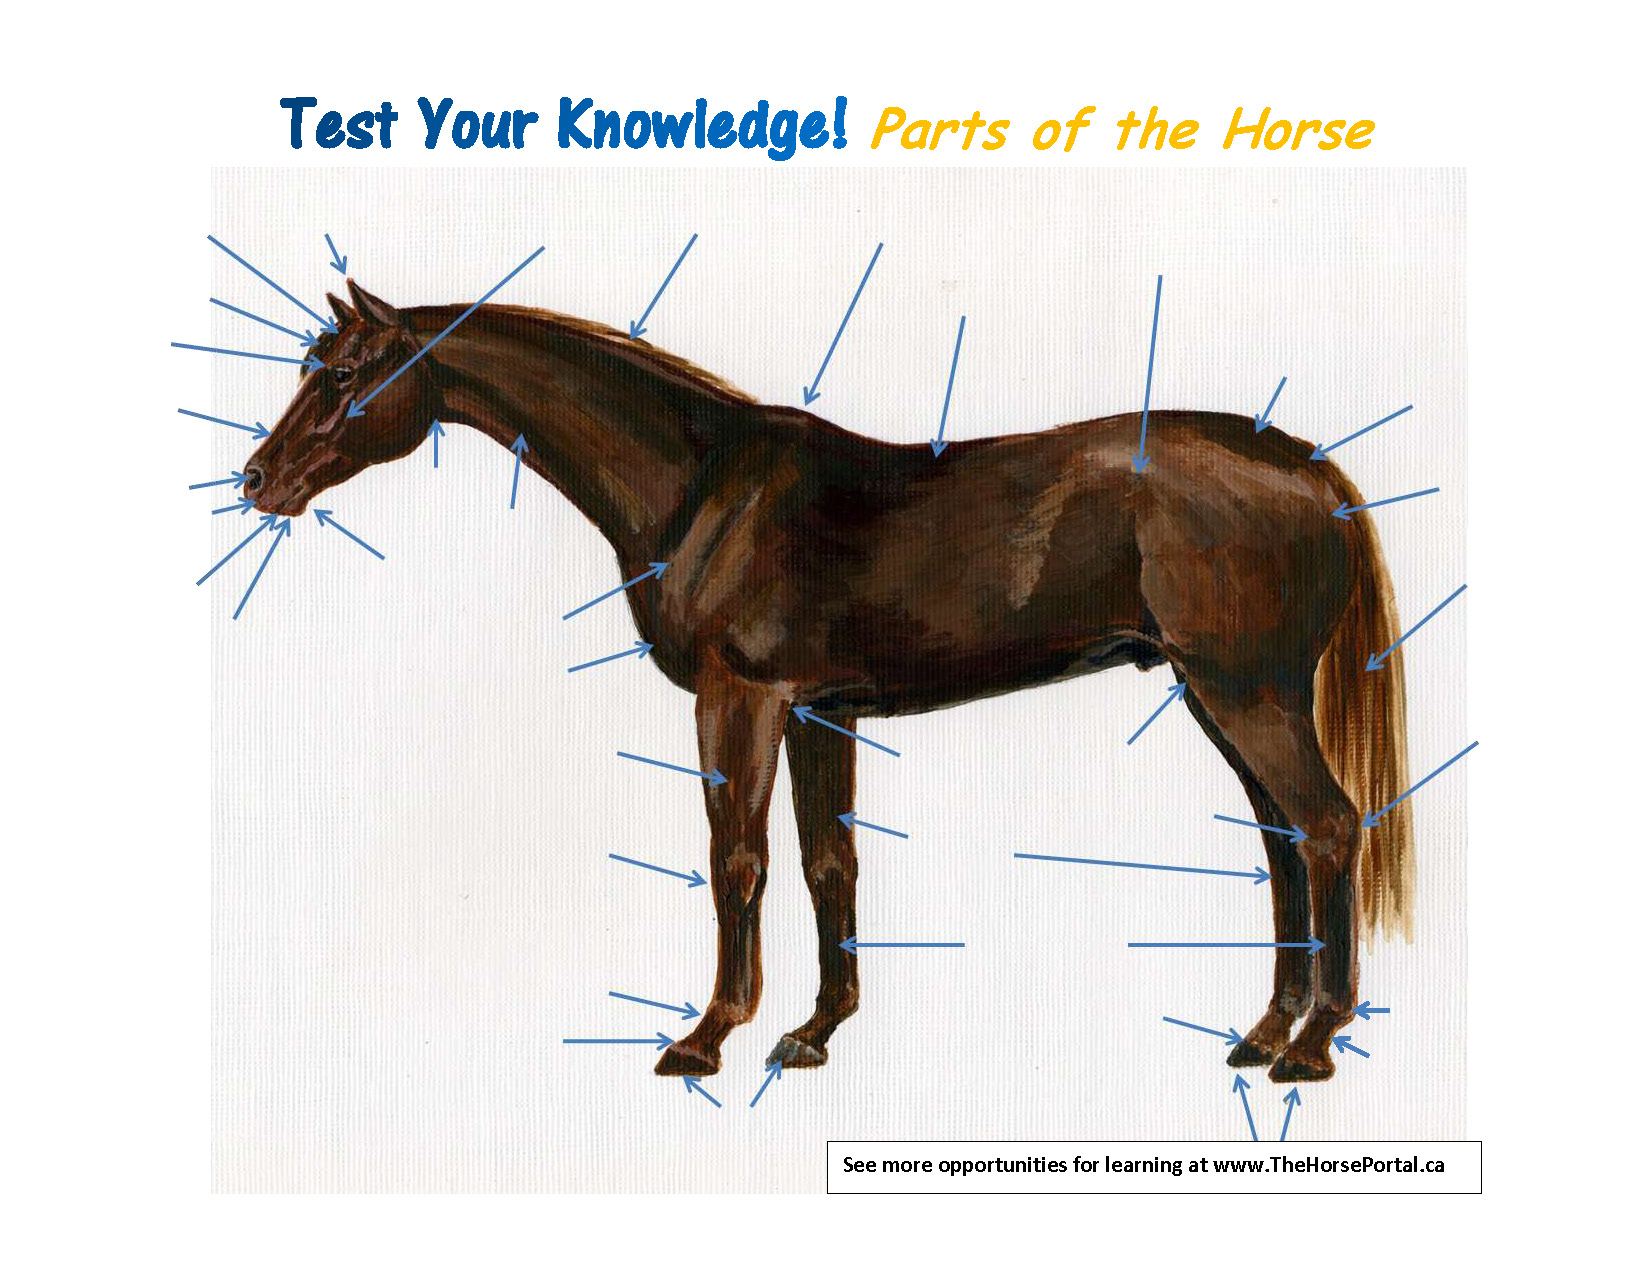 Test Your Knowledge - Parts of the Horse